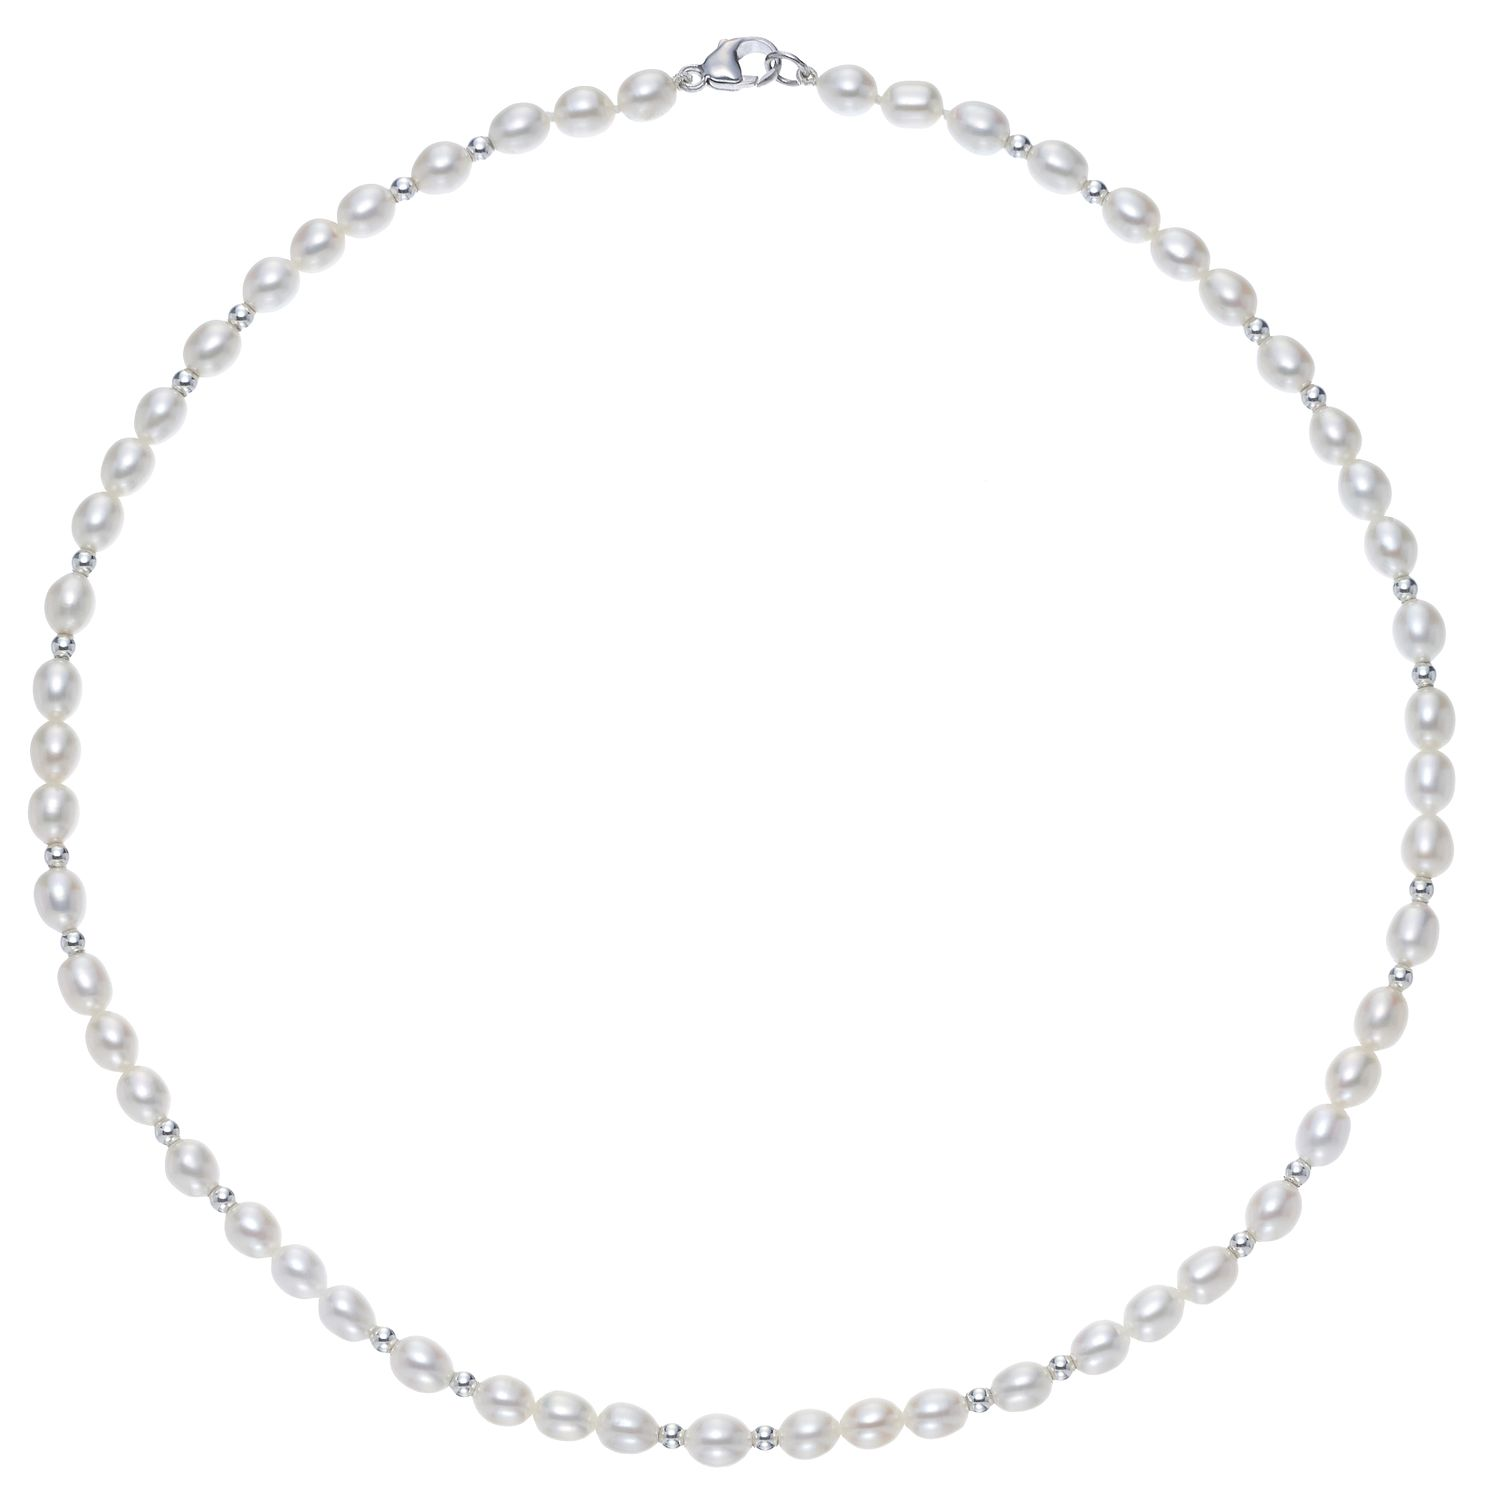 Silver Beads & Cultured Freshwater Pearl Necklace - Product number 3280500